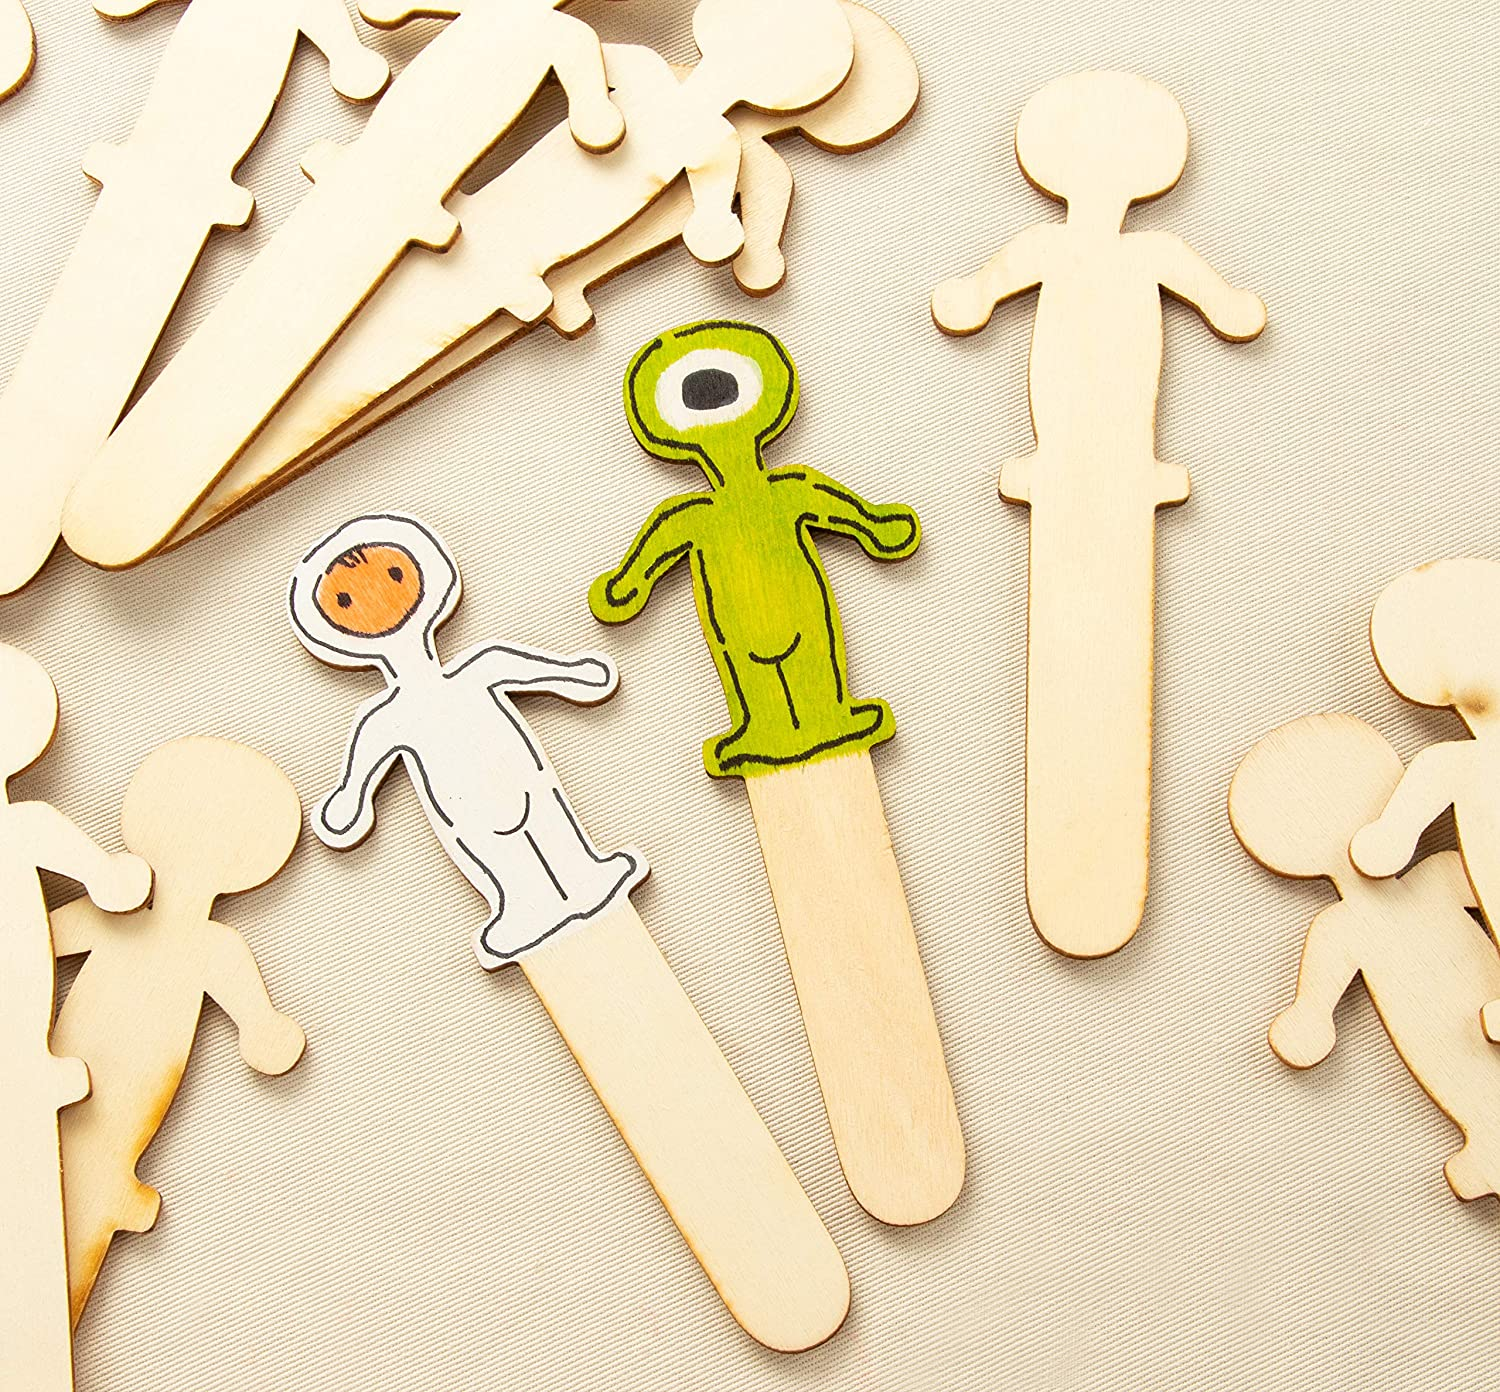 100-Pack Wooden People Shaped Craft Sticks Family Set Wood Craft Sticks People for DIY Arts and Crafts Projects Crafting Supplies People Craft Sticks